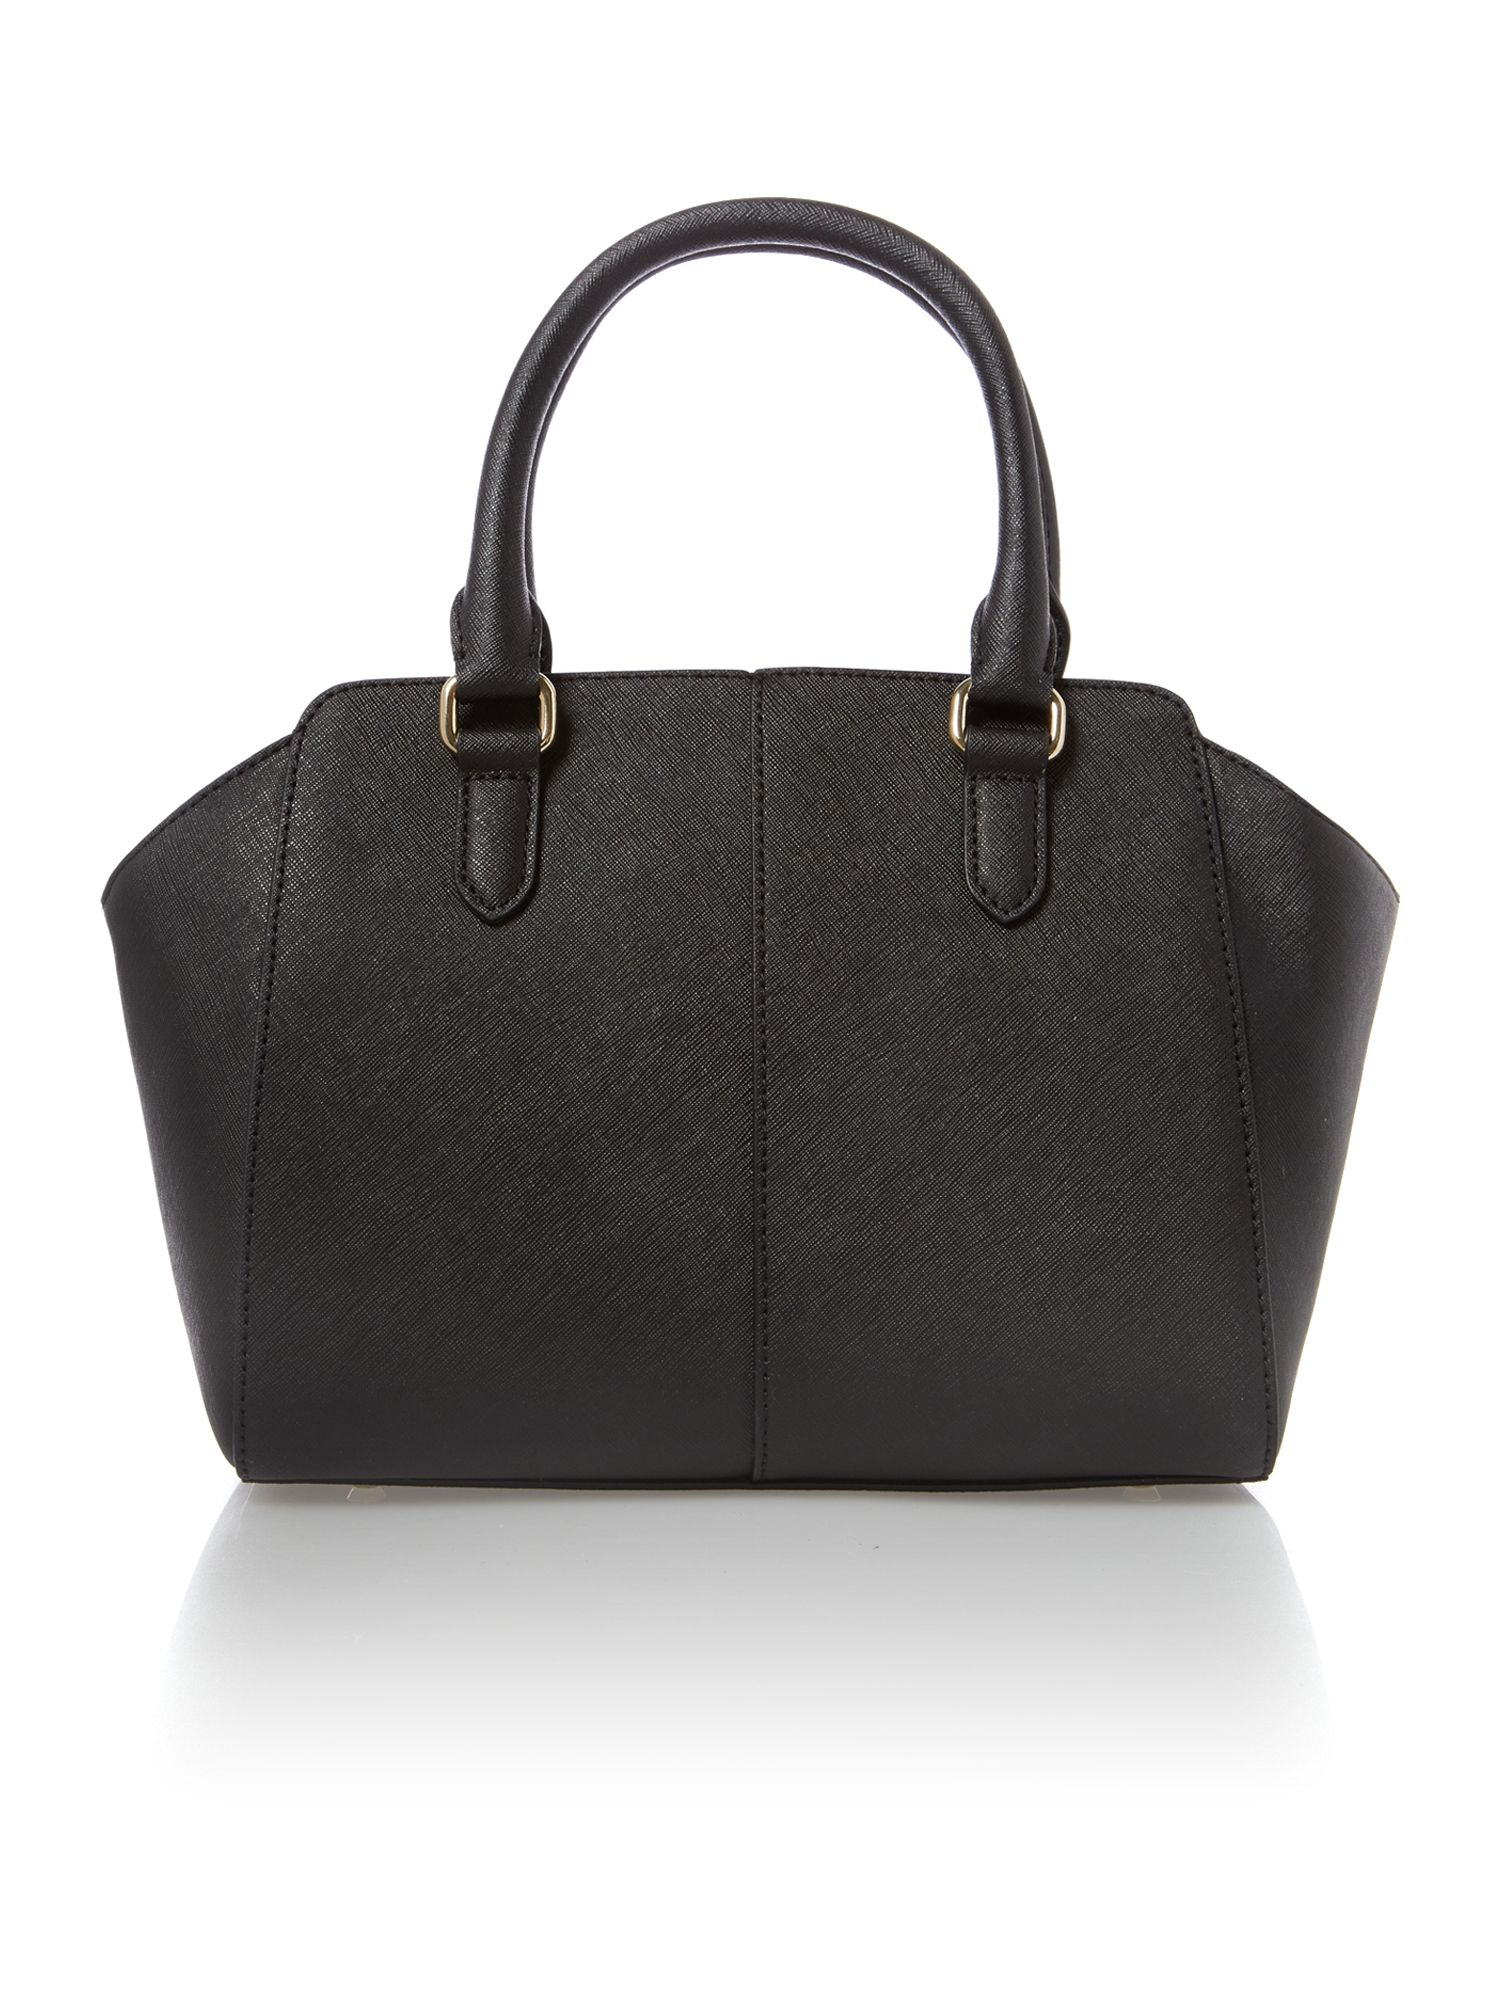 Saffiano black small tote bag